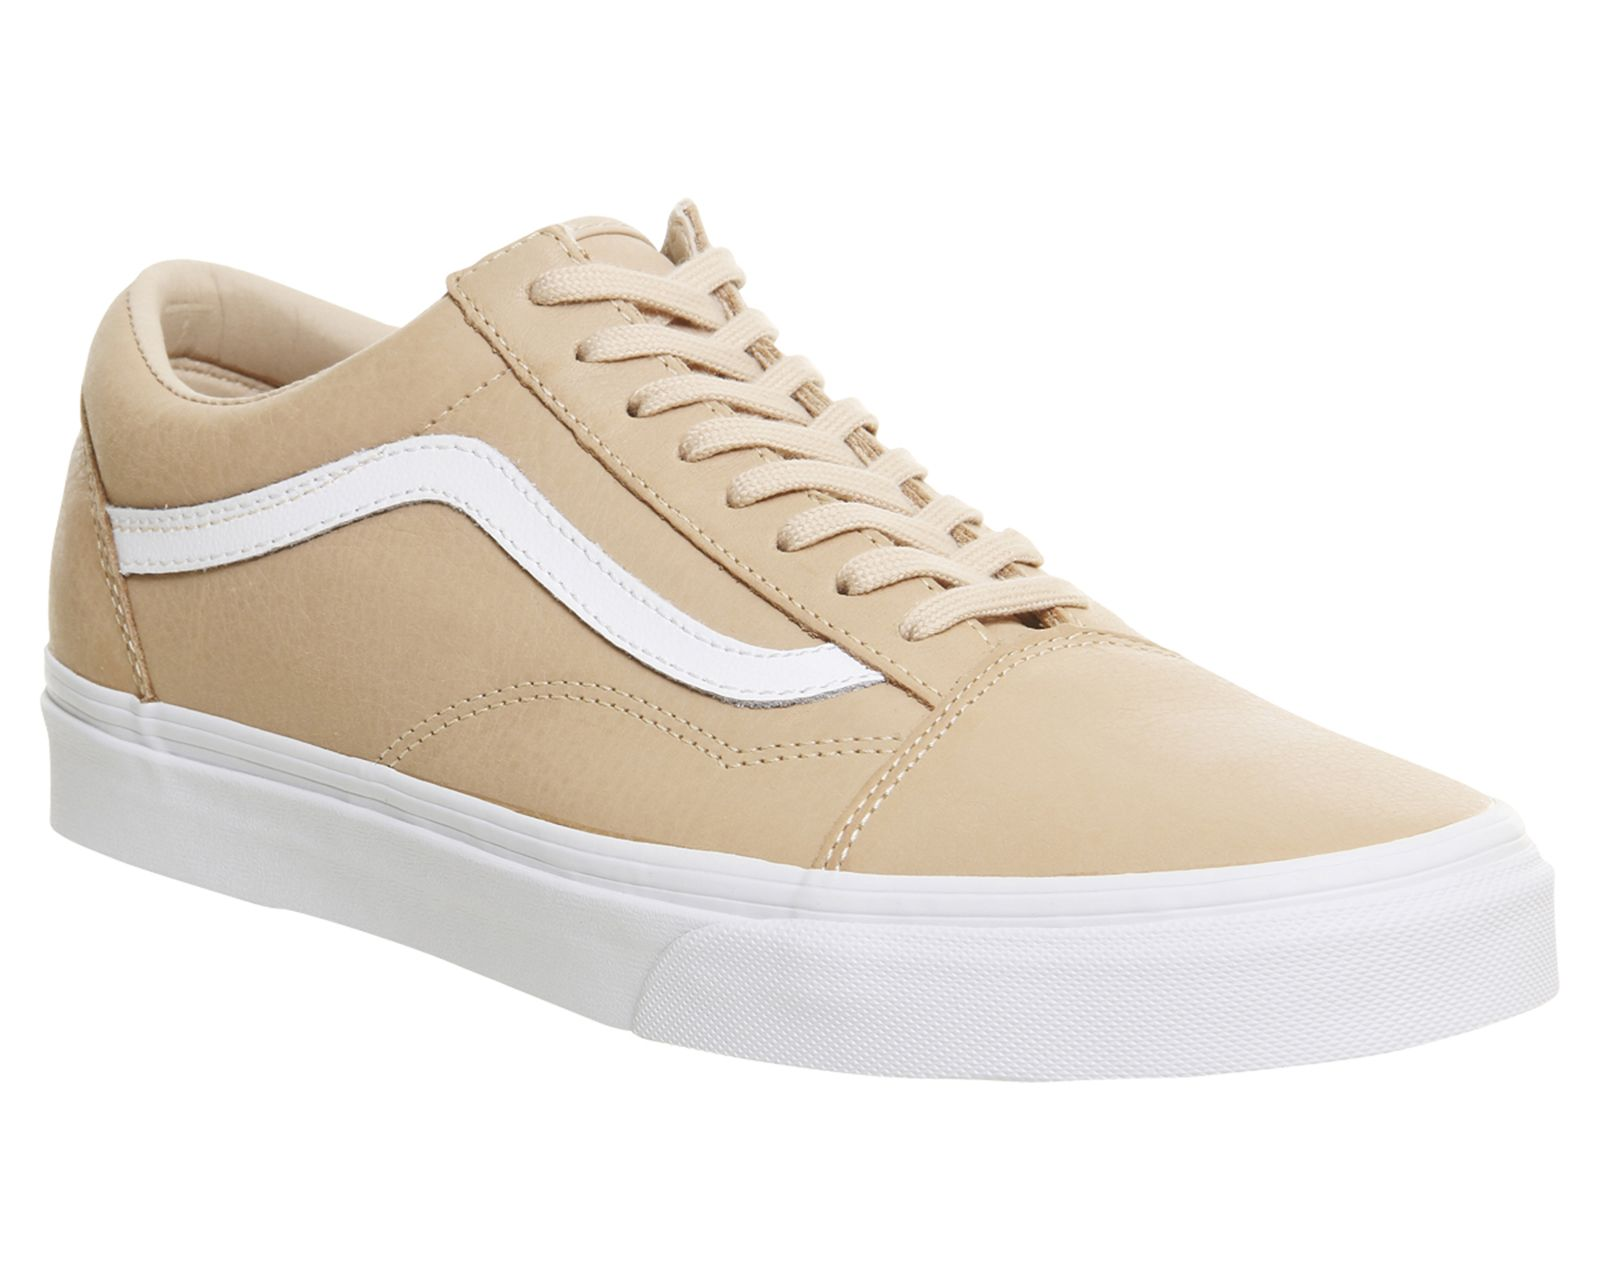 d59f5a25de2b5 Vans Old Skool Toasted Almond Leather | Shoes in 2019 | Vans old ...